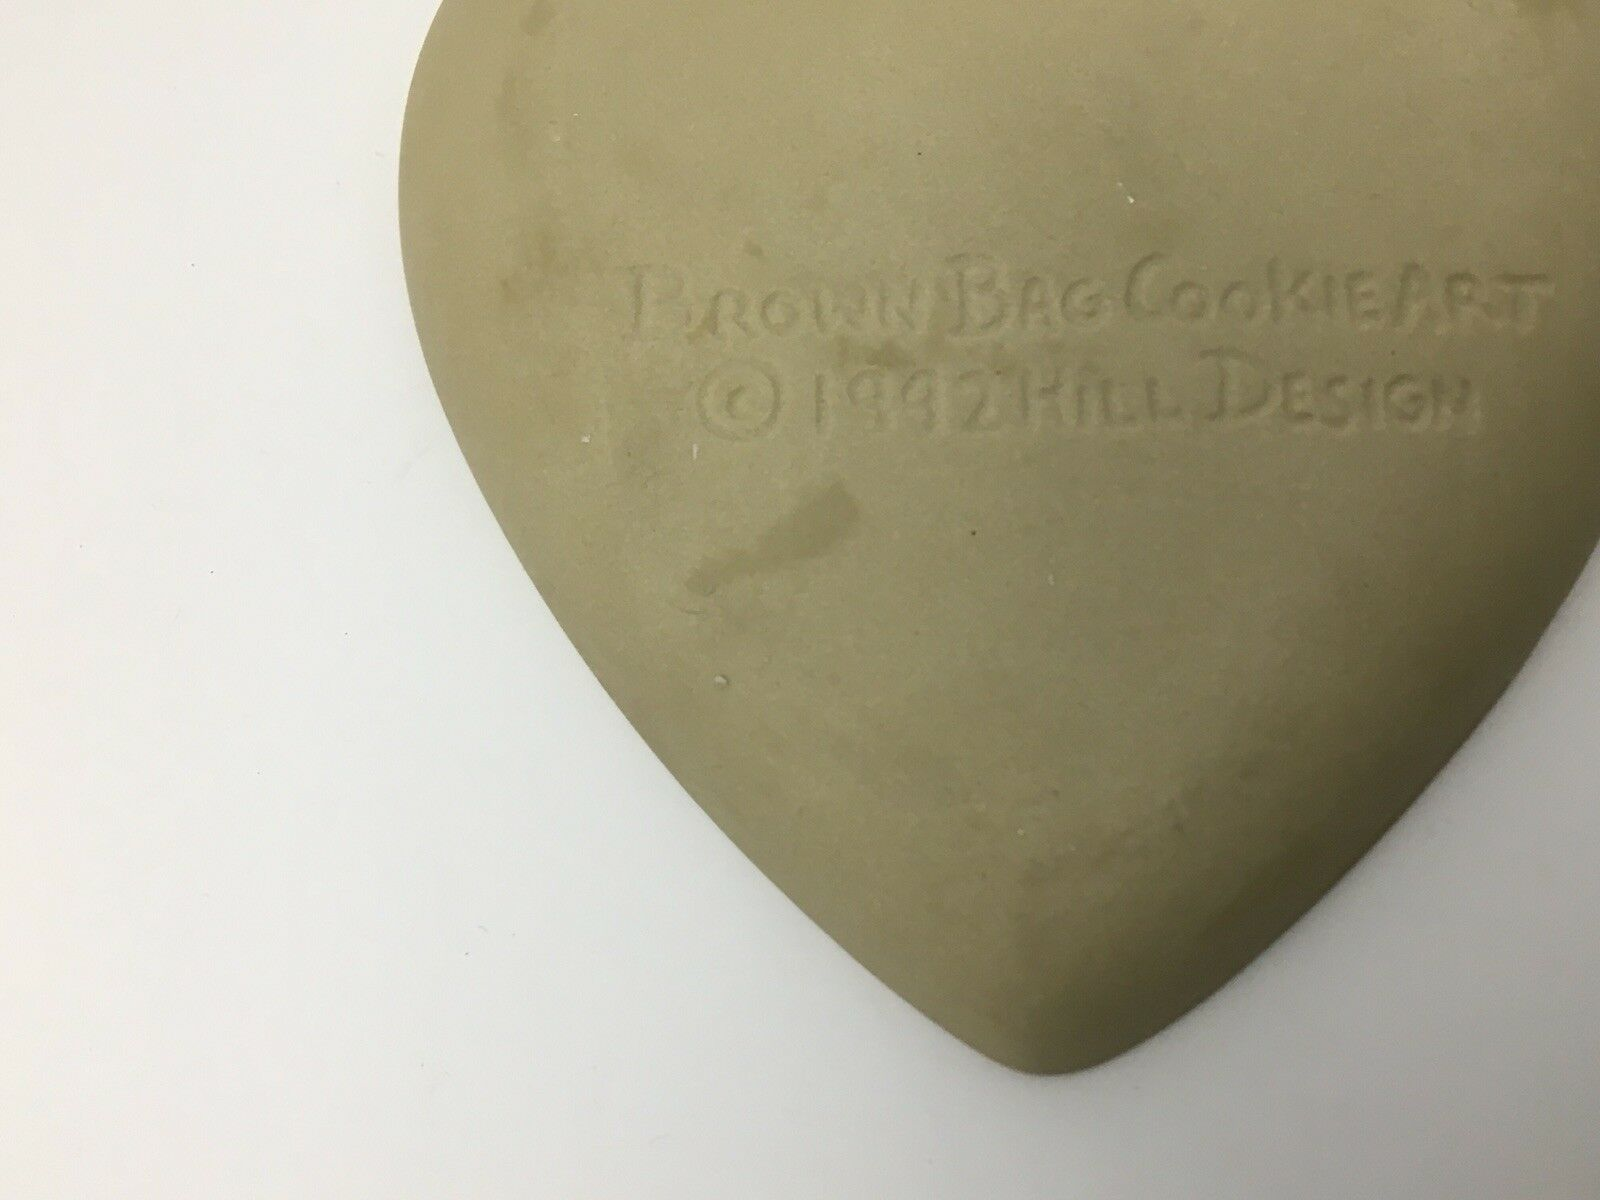 Vtg Cookie Press Cupid Heart Love Craft Brown Bag Food Mold USA Valentines Day image 7